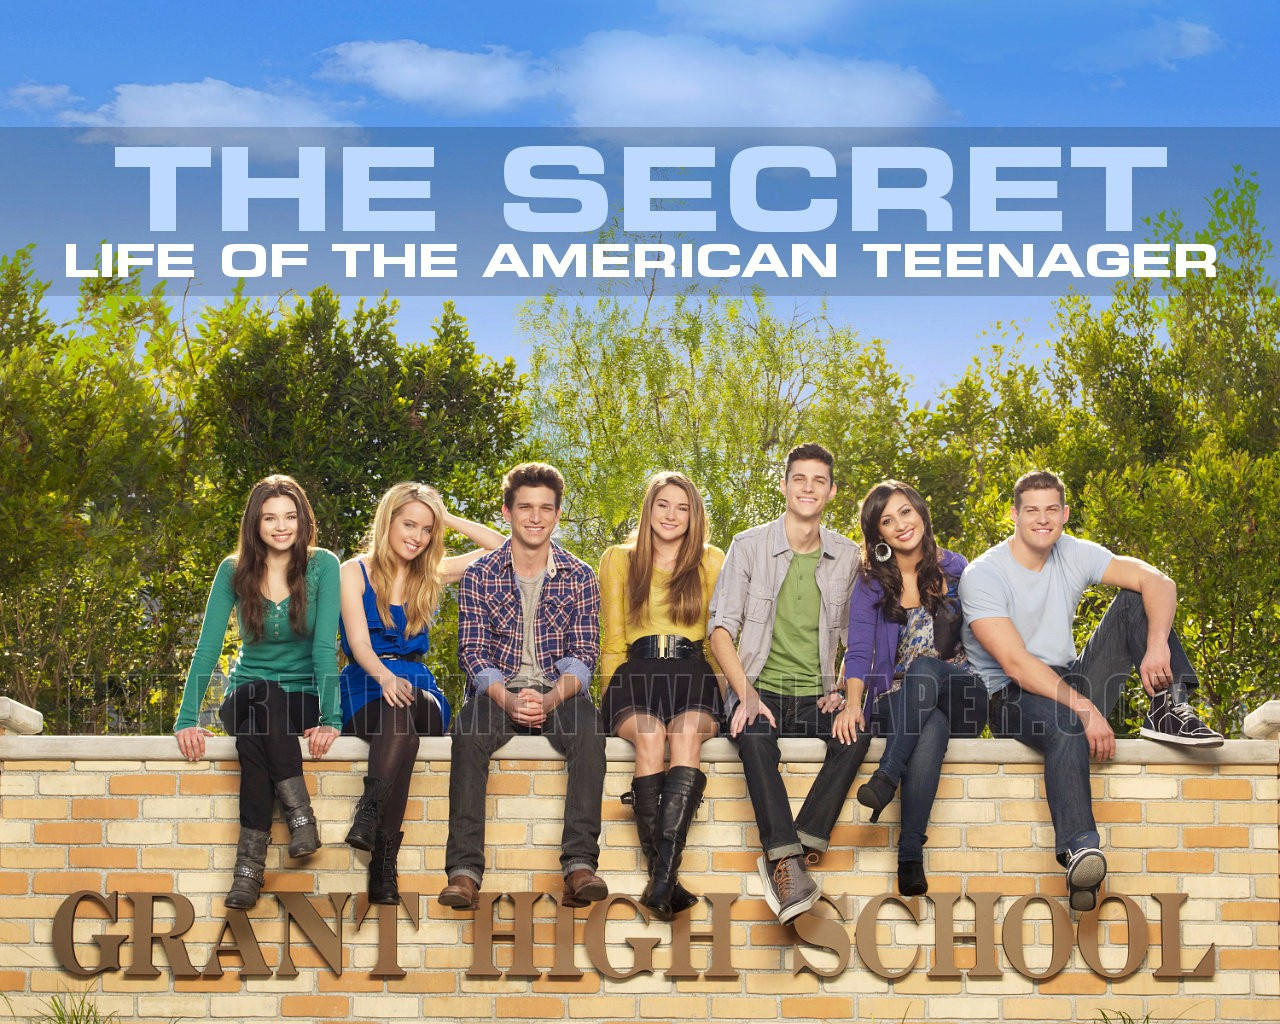 The Secret Life of the American Teenager Wallpaper   20031481 1280x1024